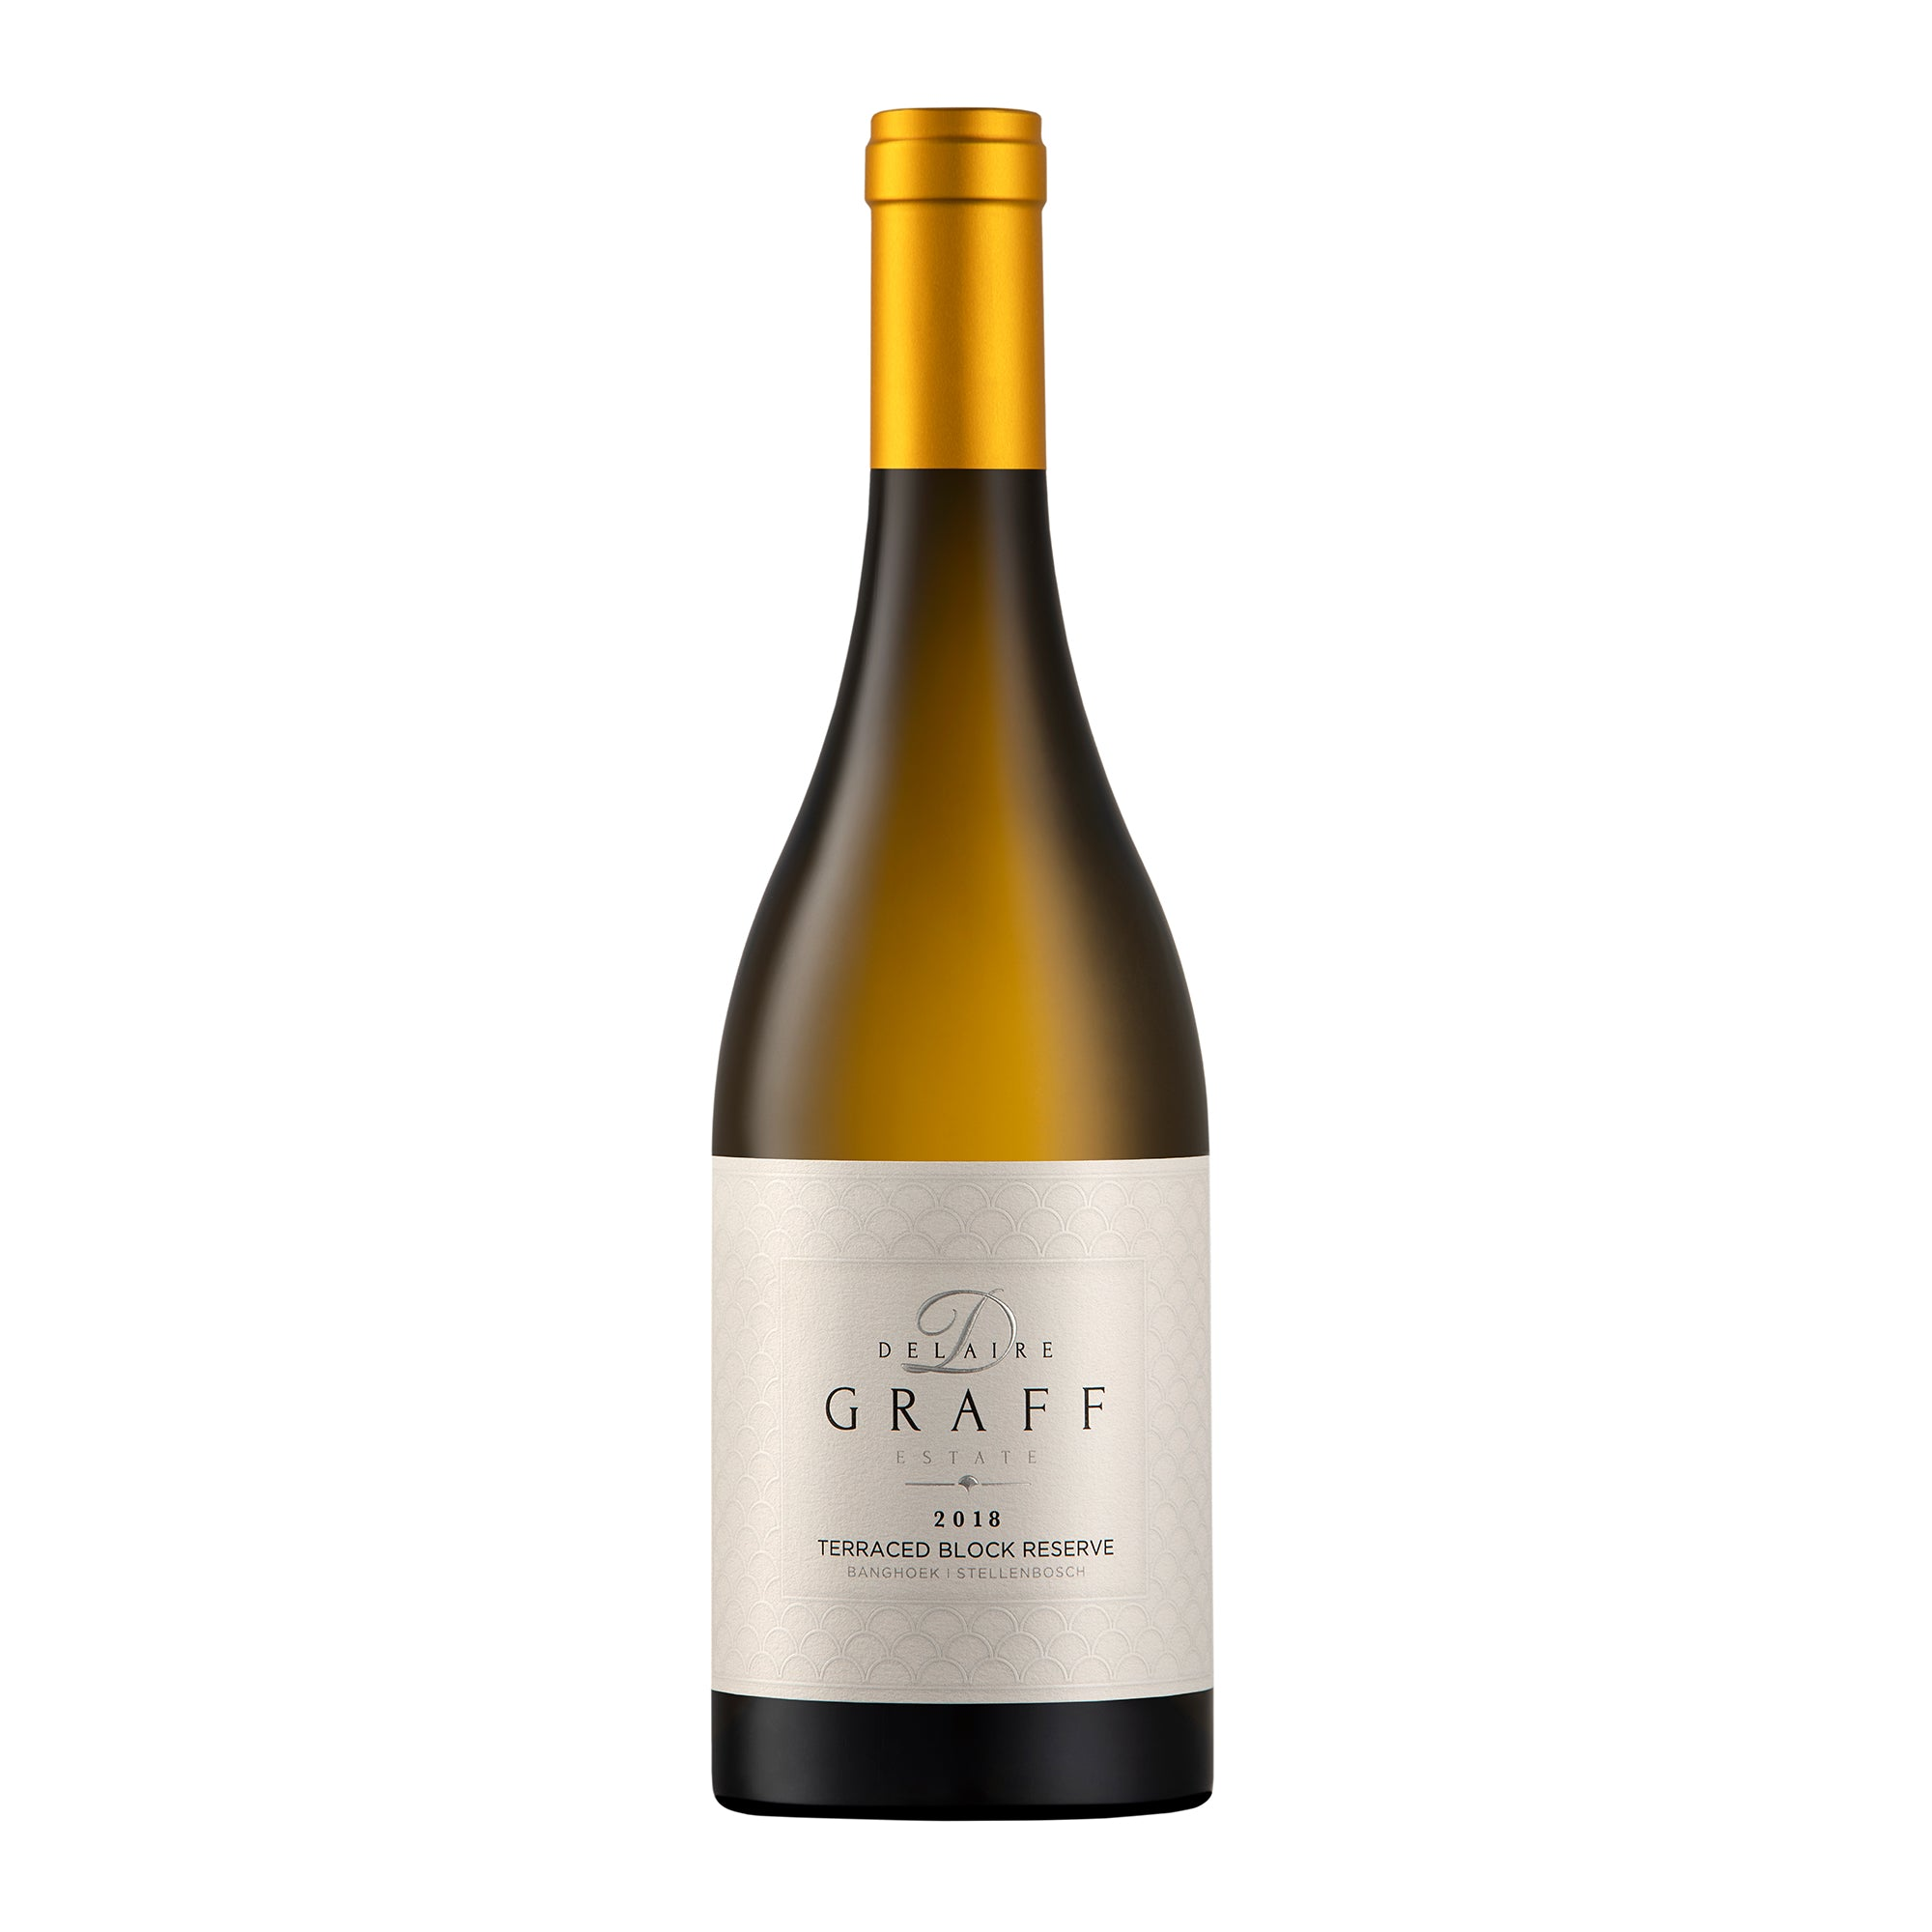 Delaire Graff Estate Icon Collection Case, Terraced Block Reserve Chardonnay 2018